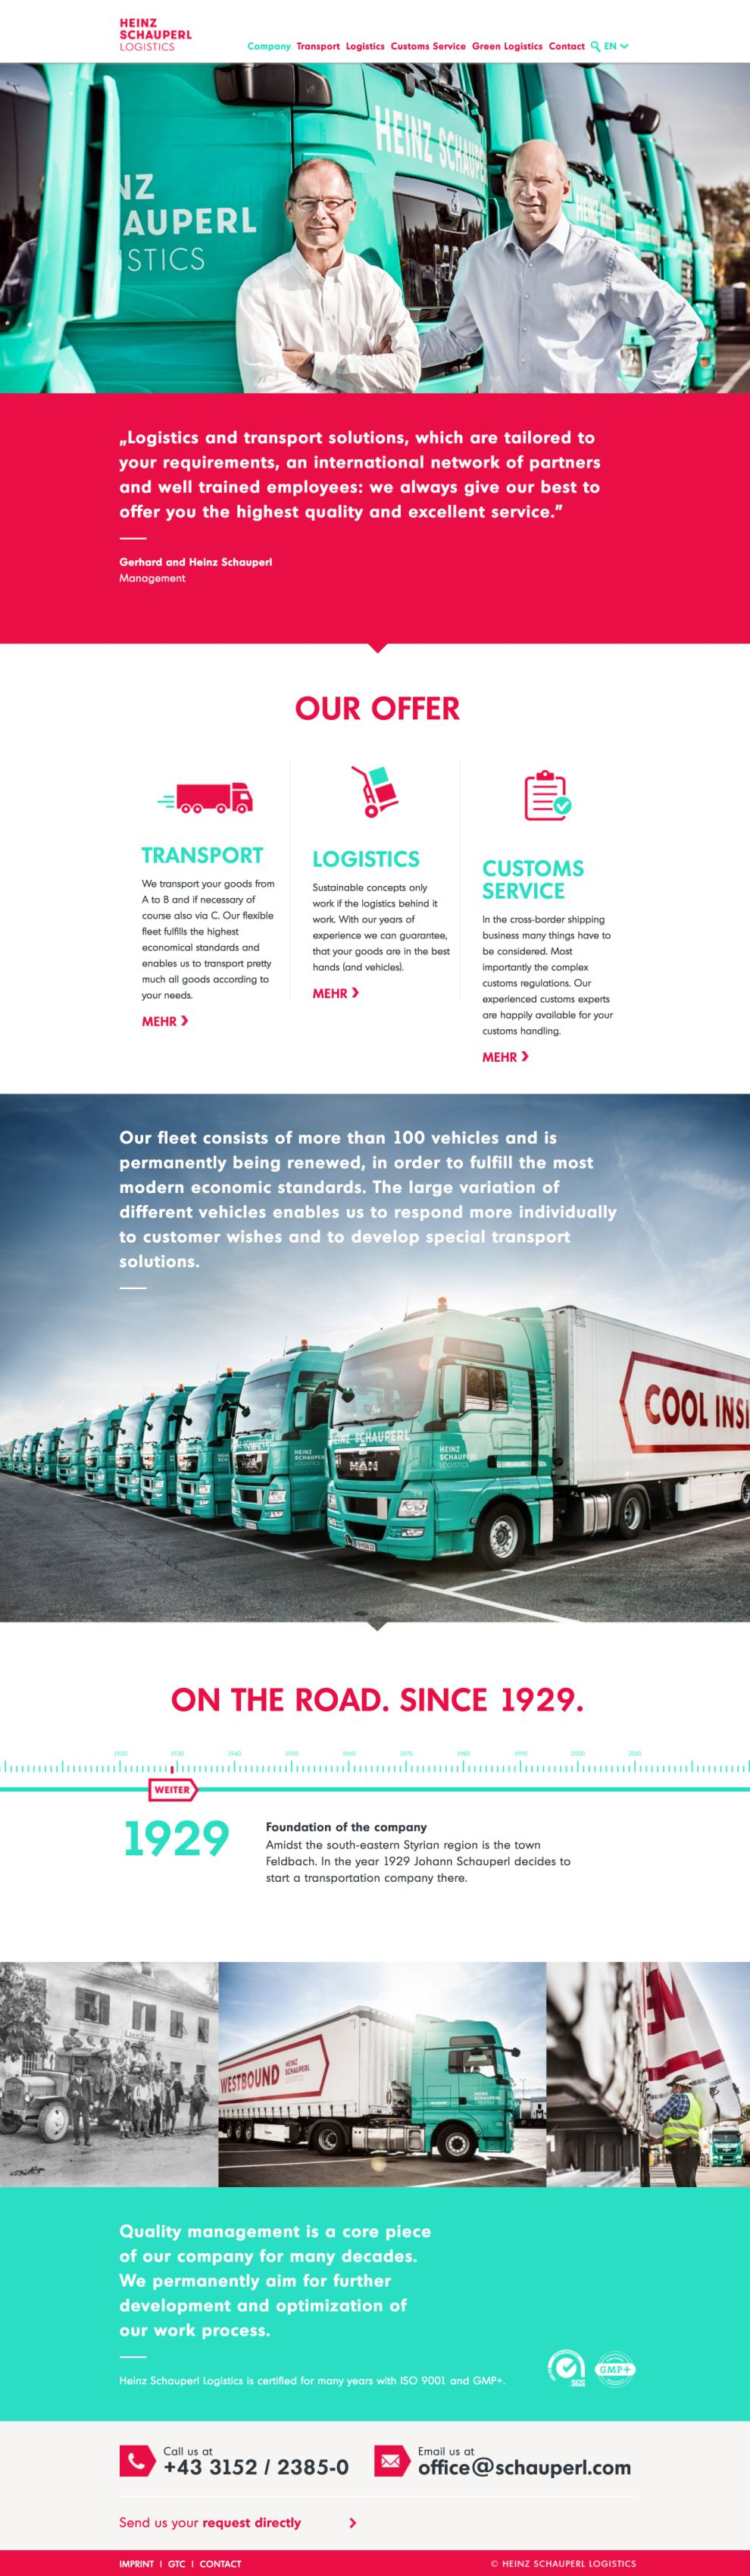 Heinz Schauperl Logistics Colorful About Page